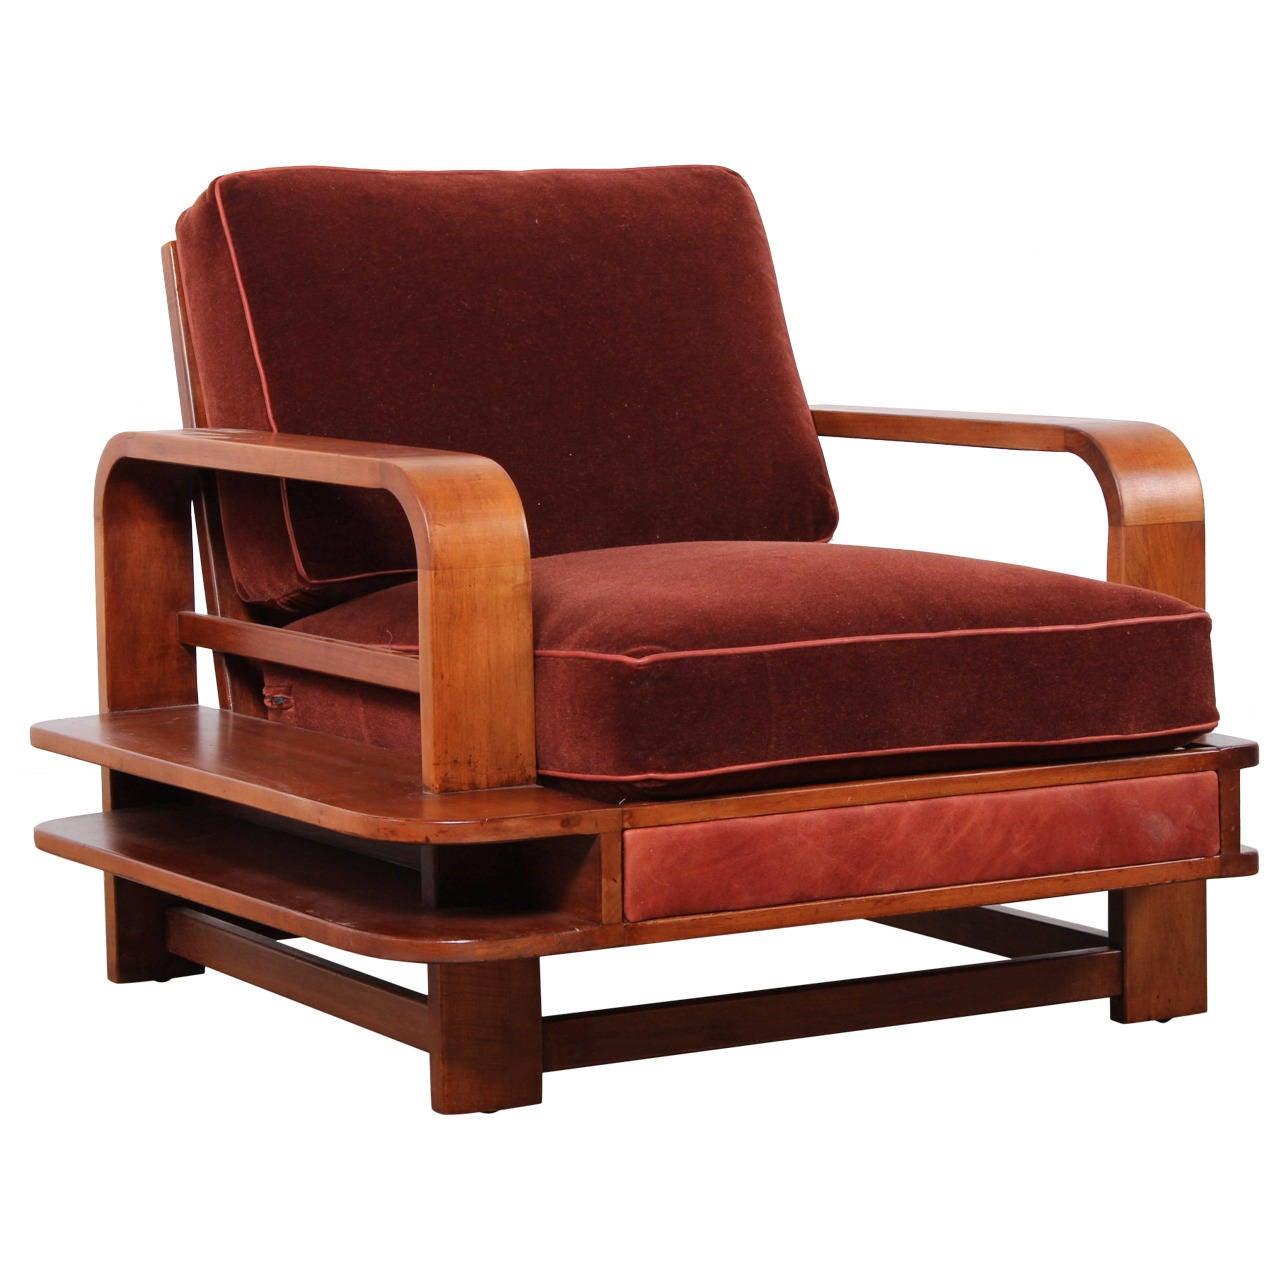 conant ball chair poang instructions rare lounge designed by russel wright for